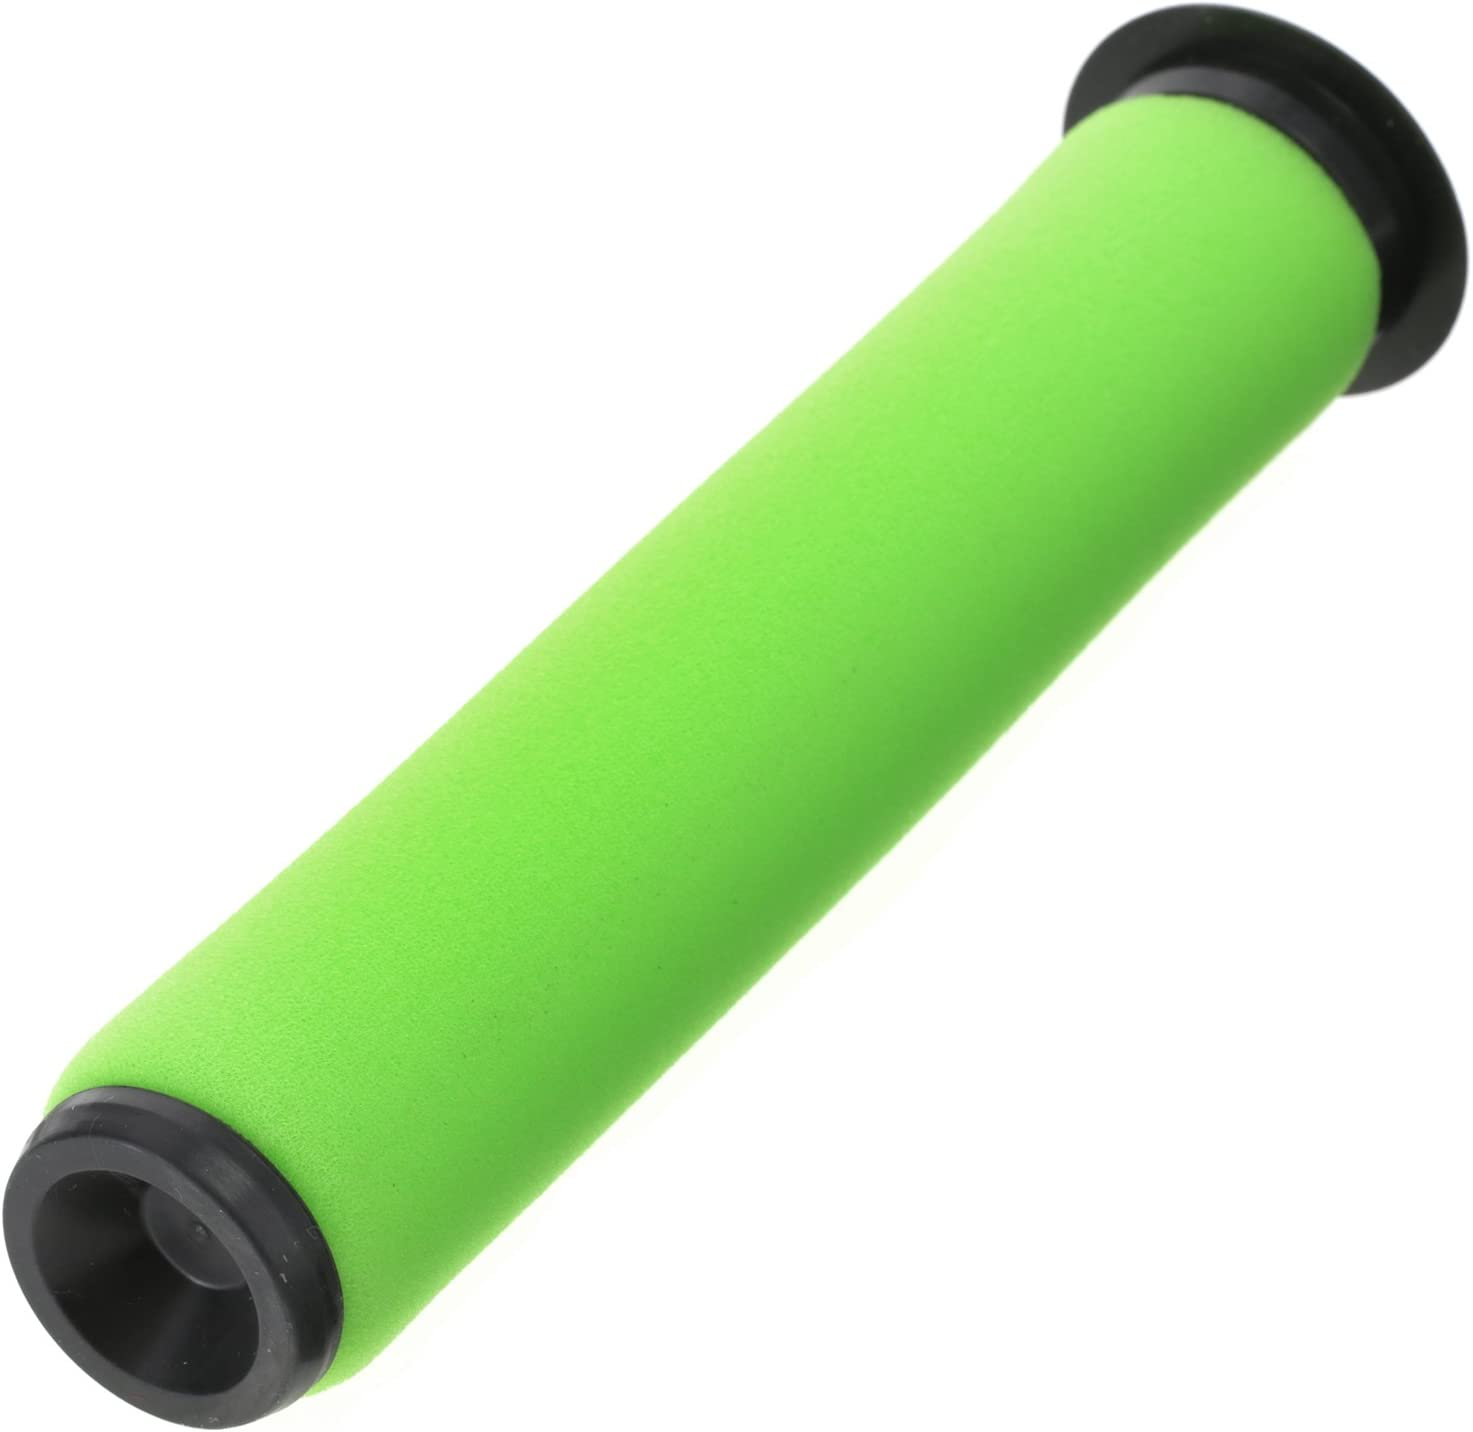 VACSPARE Washable Cone Stick Filter For Gtech AirRam MK2 K9 MK2 Vacuum Cleaners